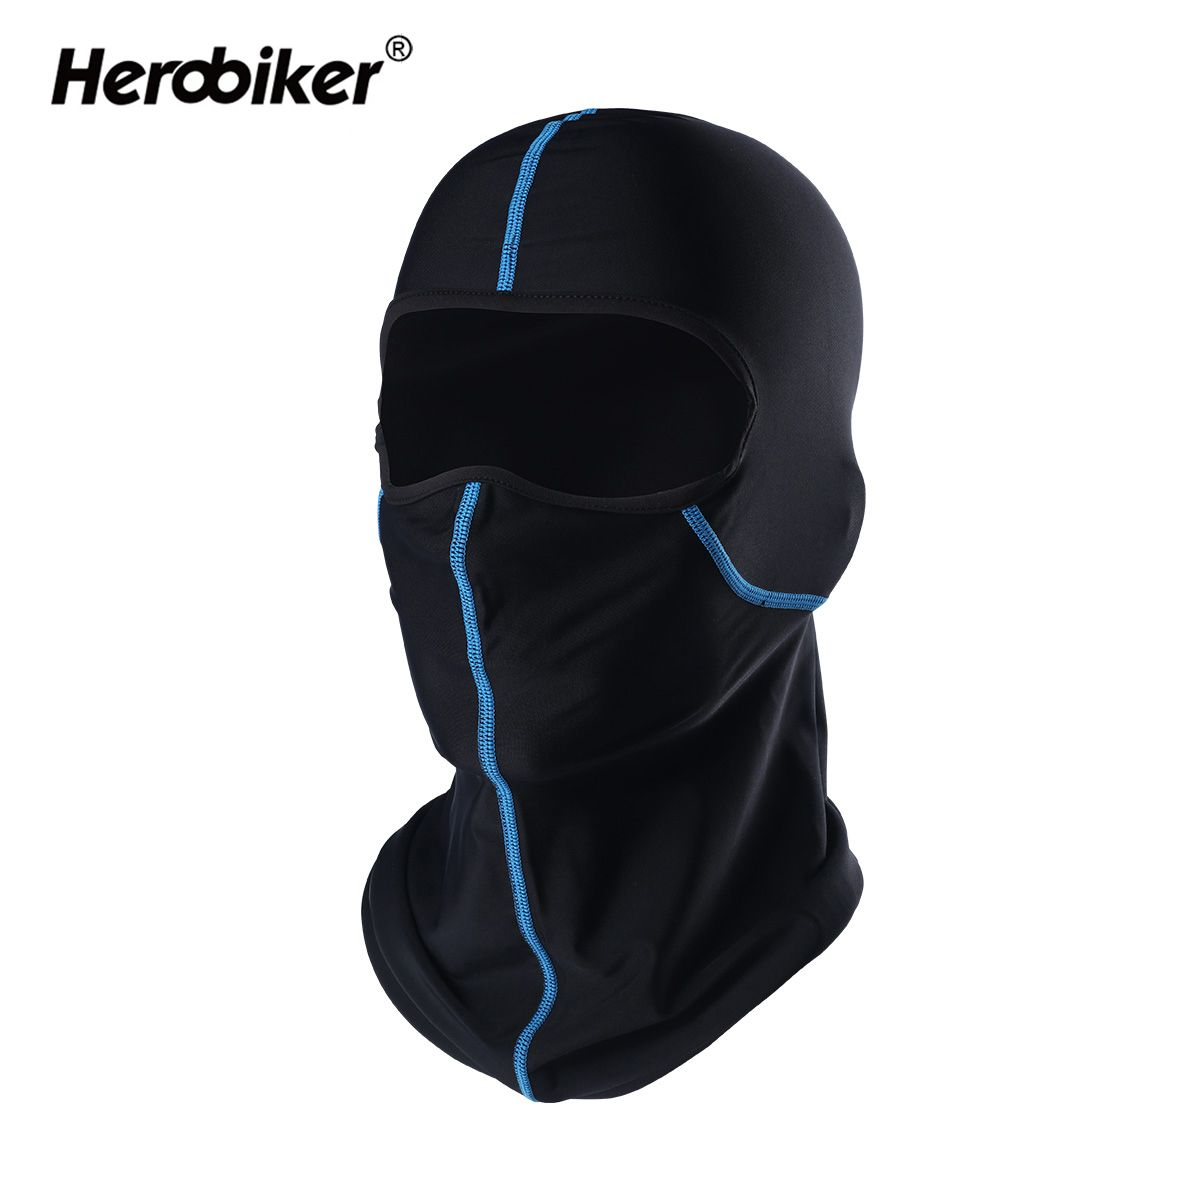 HEROBIKER Balaclava Moto Motorcycle Face Mask Breathable Military Tactical Face Shield Cycling Bike Training Full Face Mask Caps